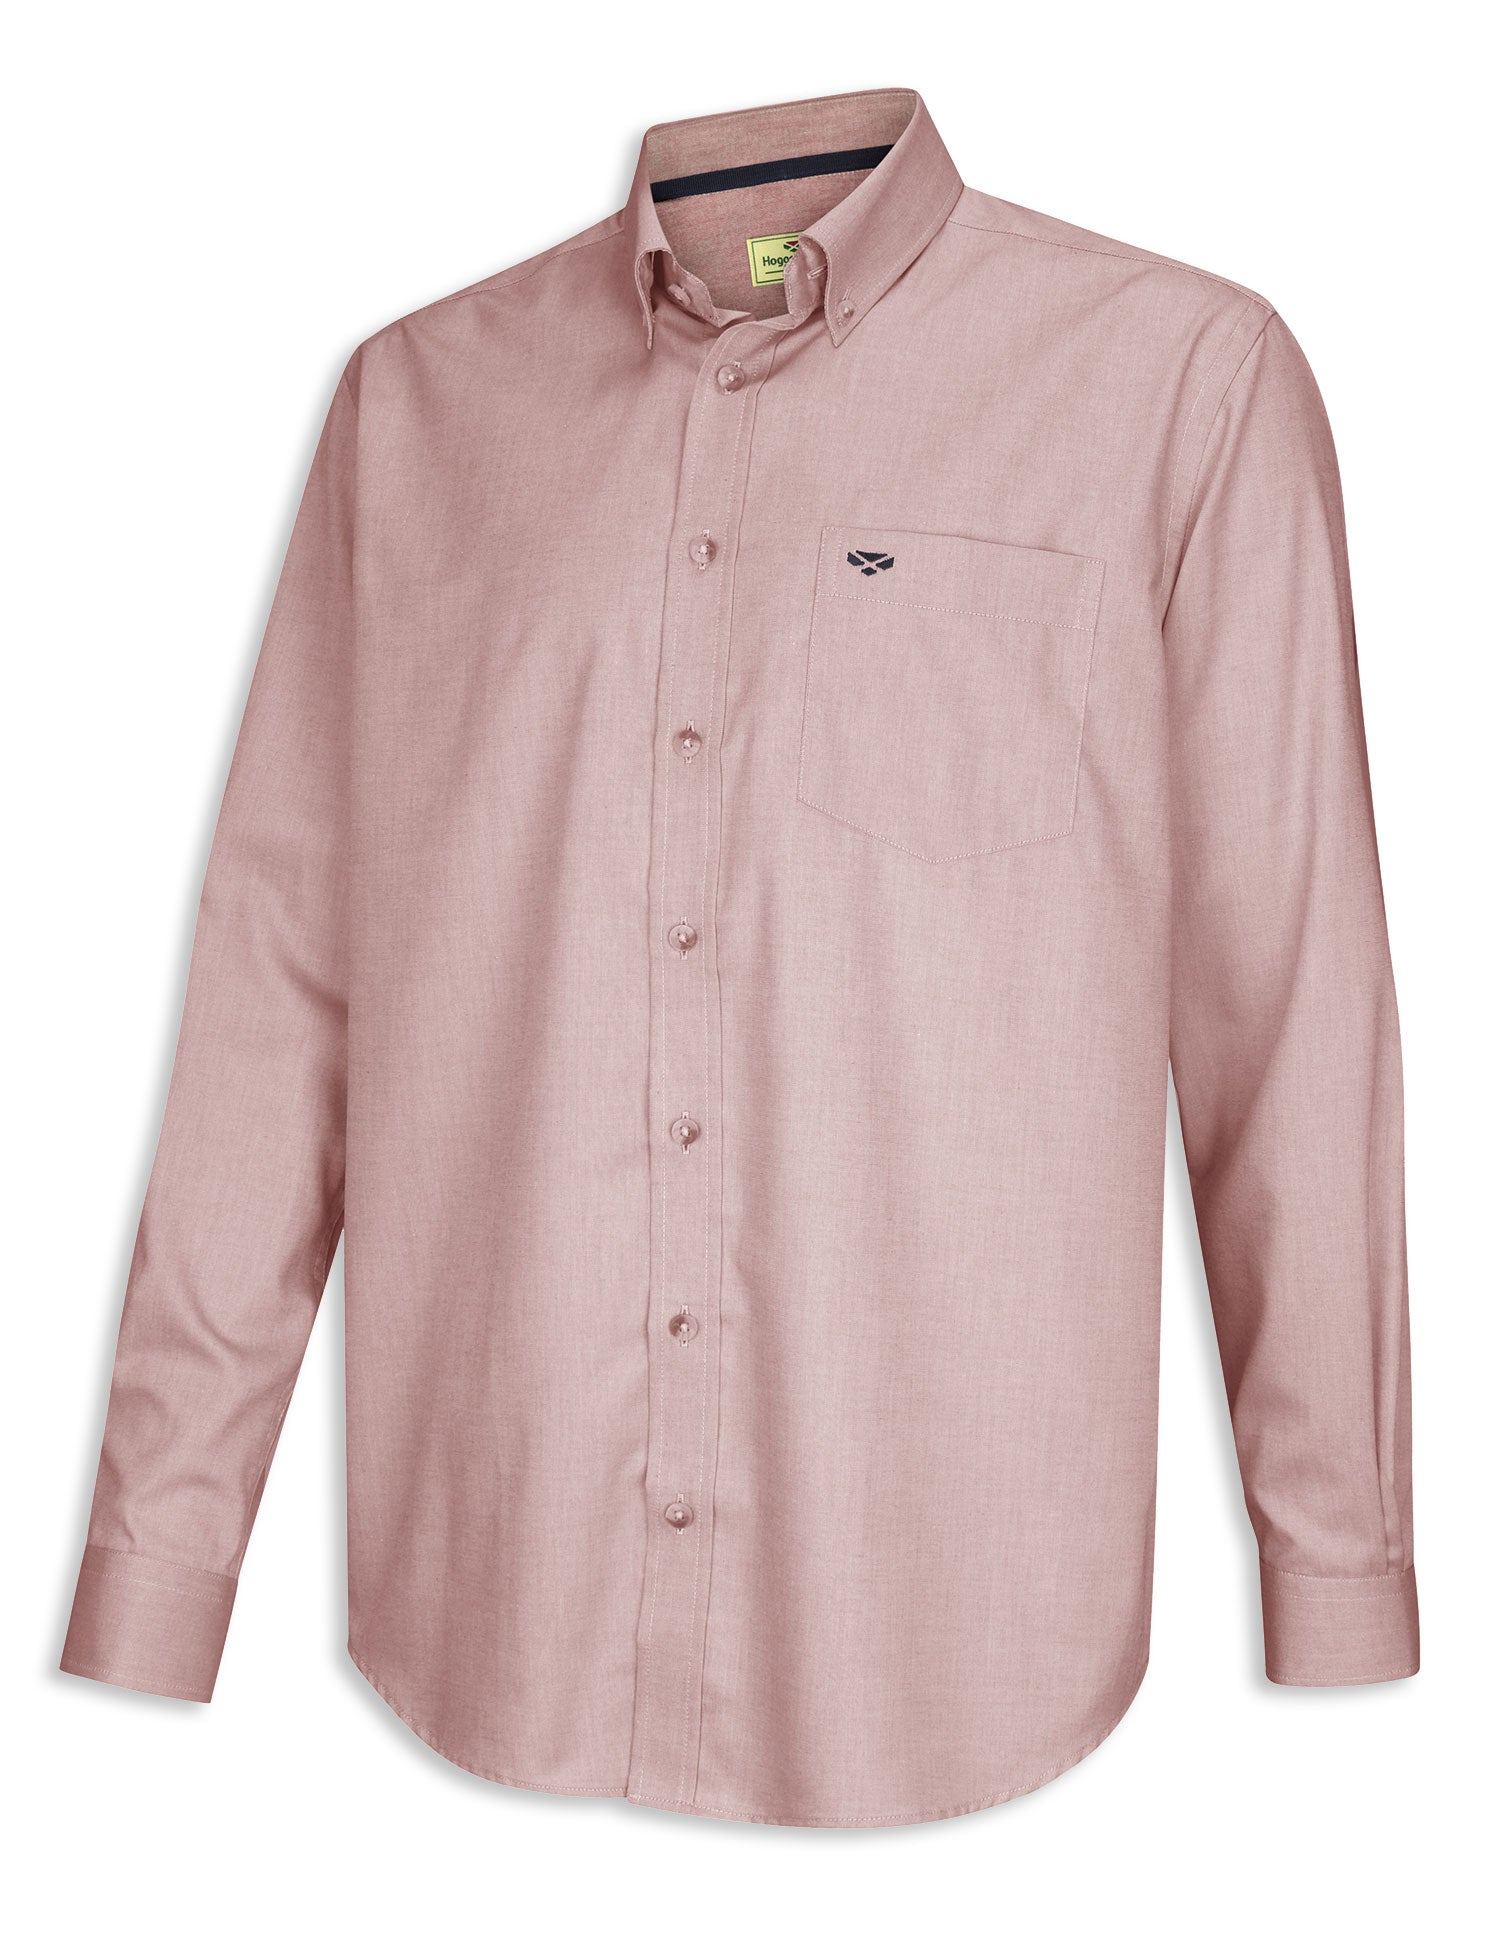 Hoggs Dunedin Plain Oxford Shirt | Wine